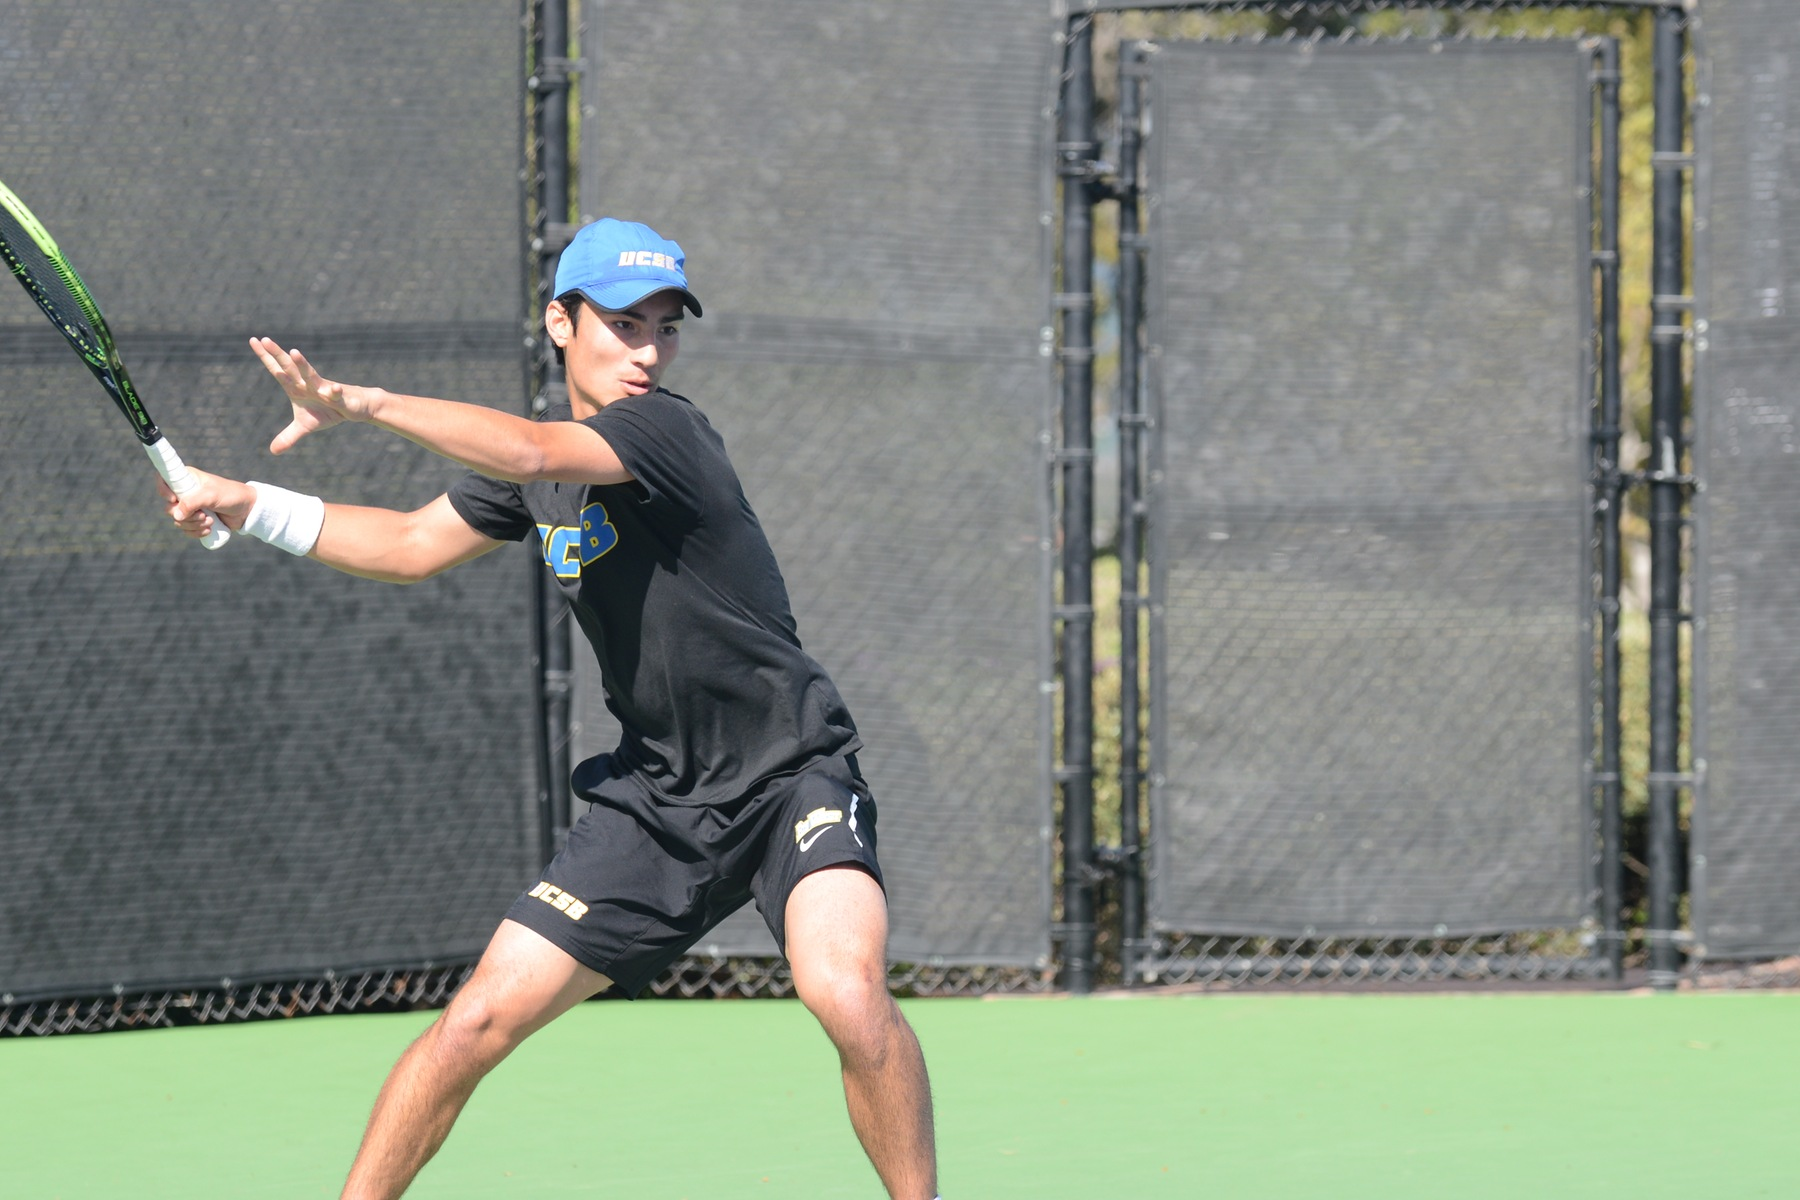 Simon Freund (photo by Eric Isaacs) clinched the Gauchos victory with his singles match Saturday 6-1, 6-3 over Garrett Auproux.